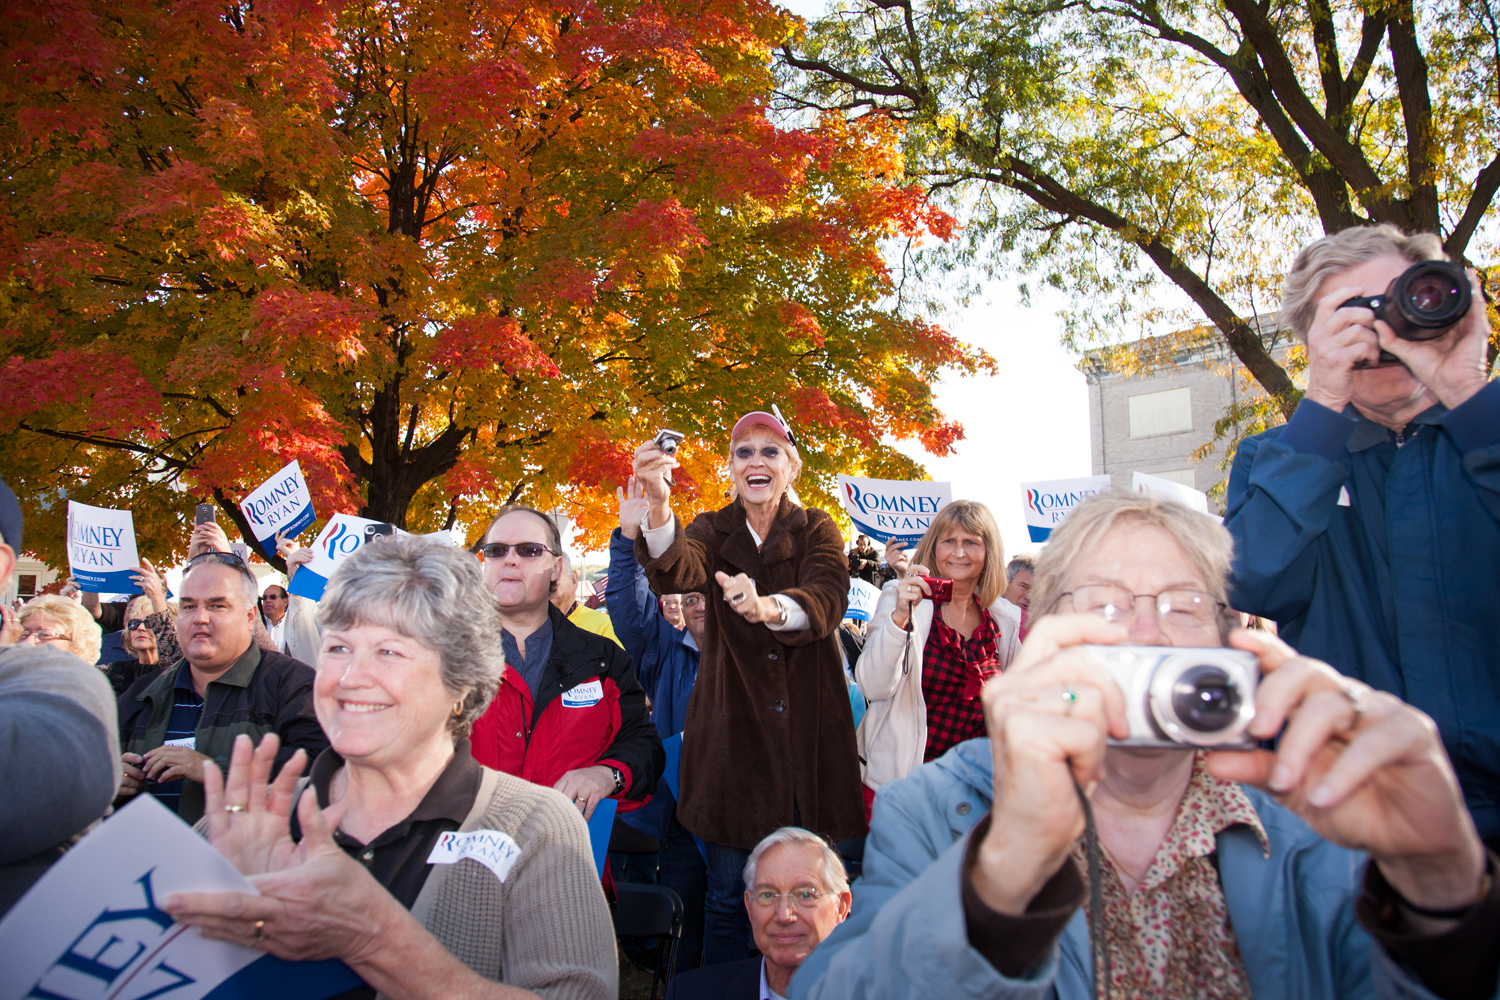 The crowd at the Clinton Victory Rally in Clinton, Iowa. Oct. 2, 2012. Ryan campaigned in Iowa in the week leading up to the Vice Presidential debate.